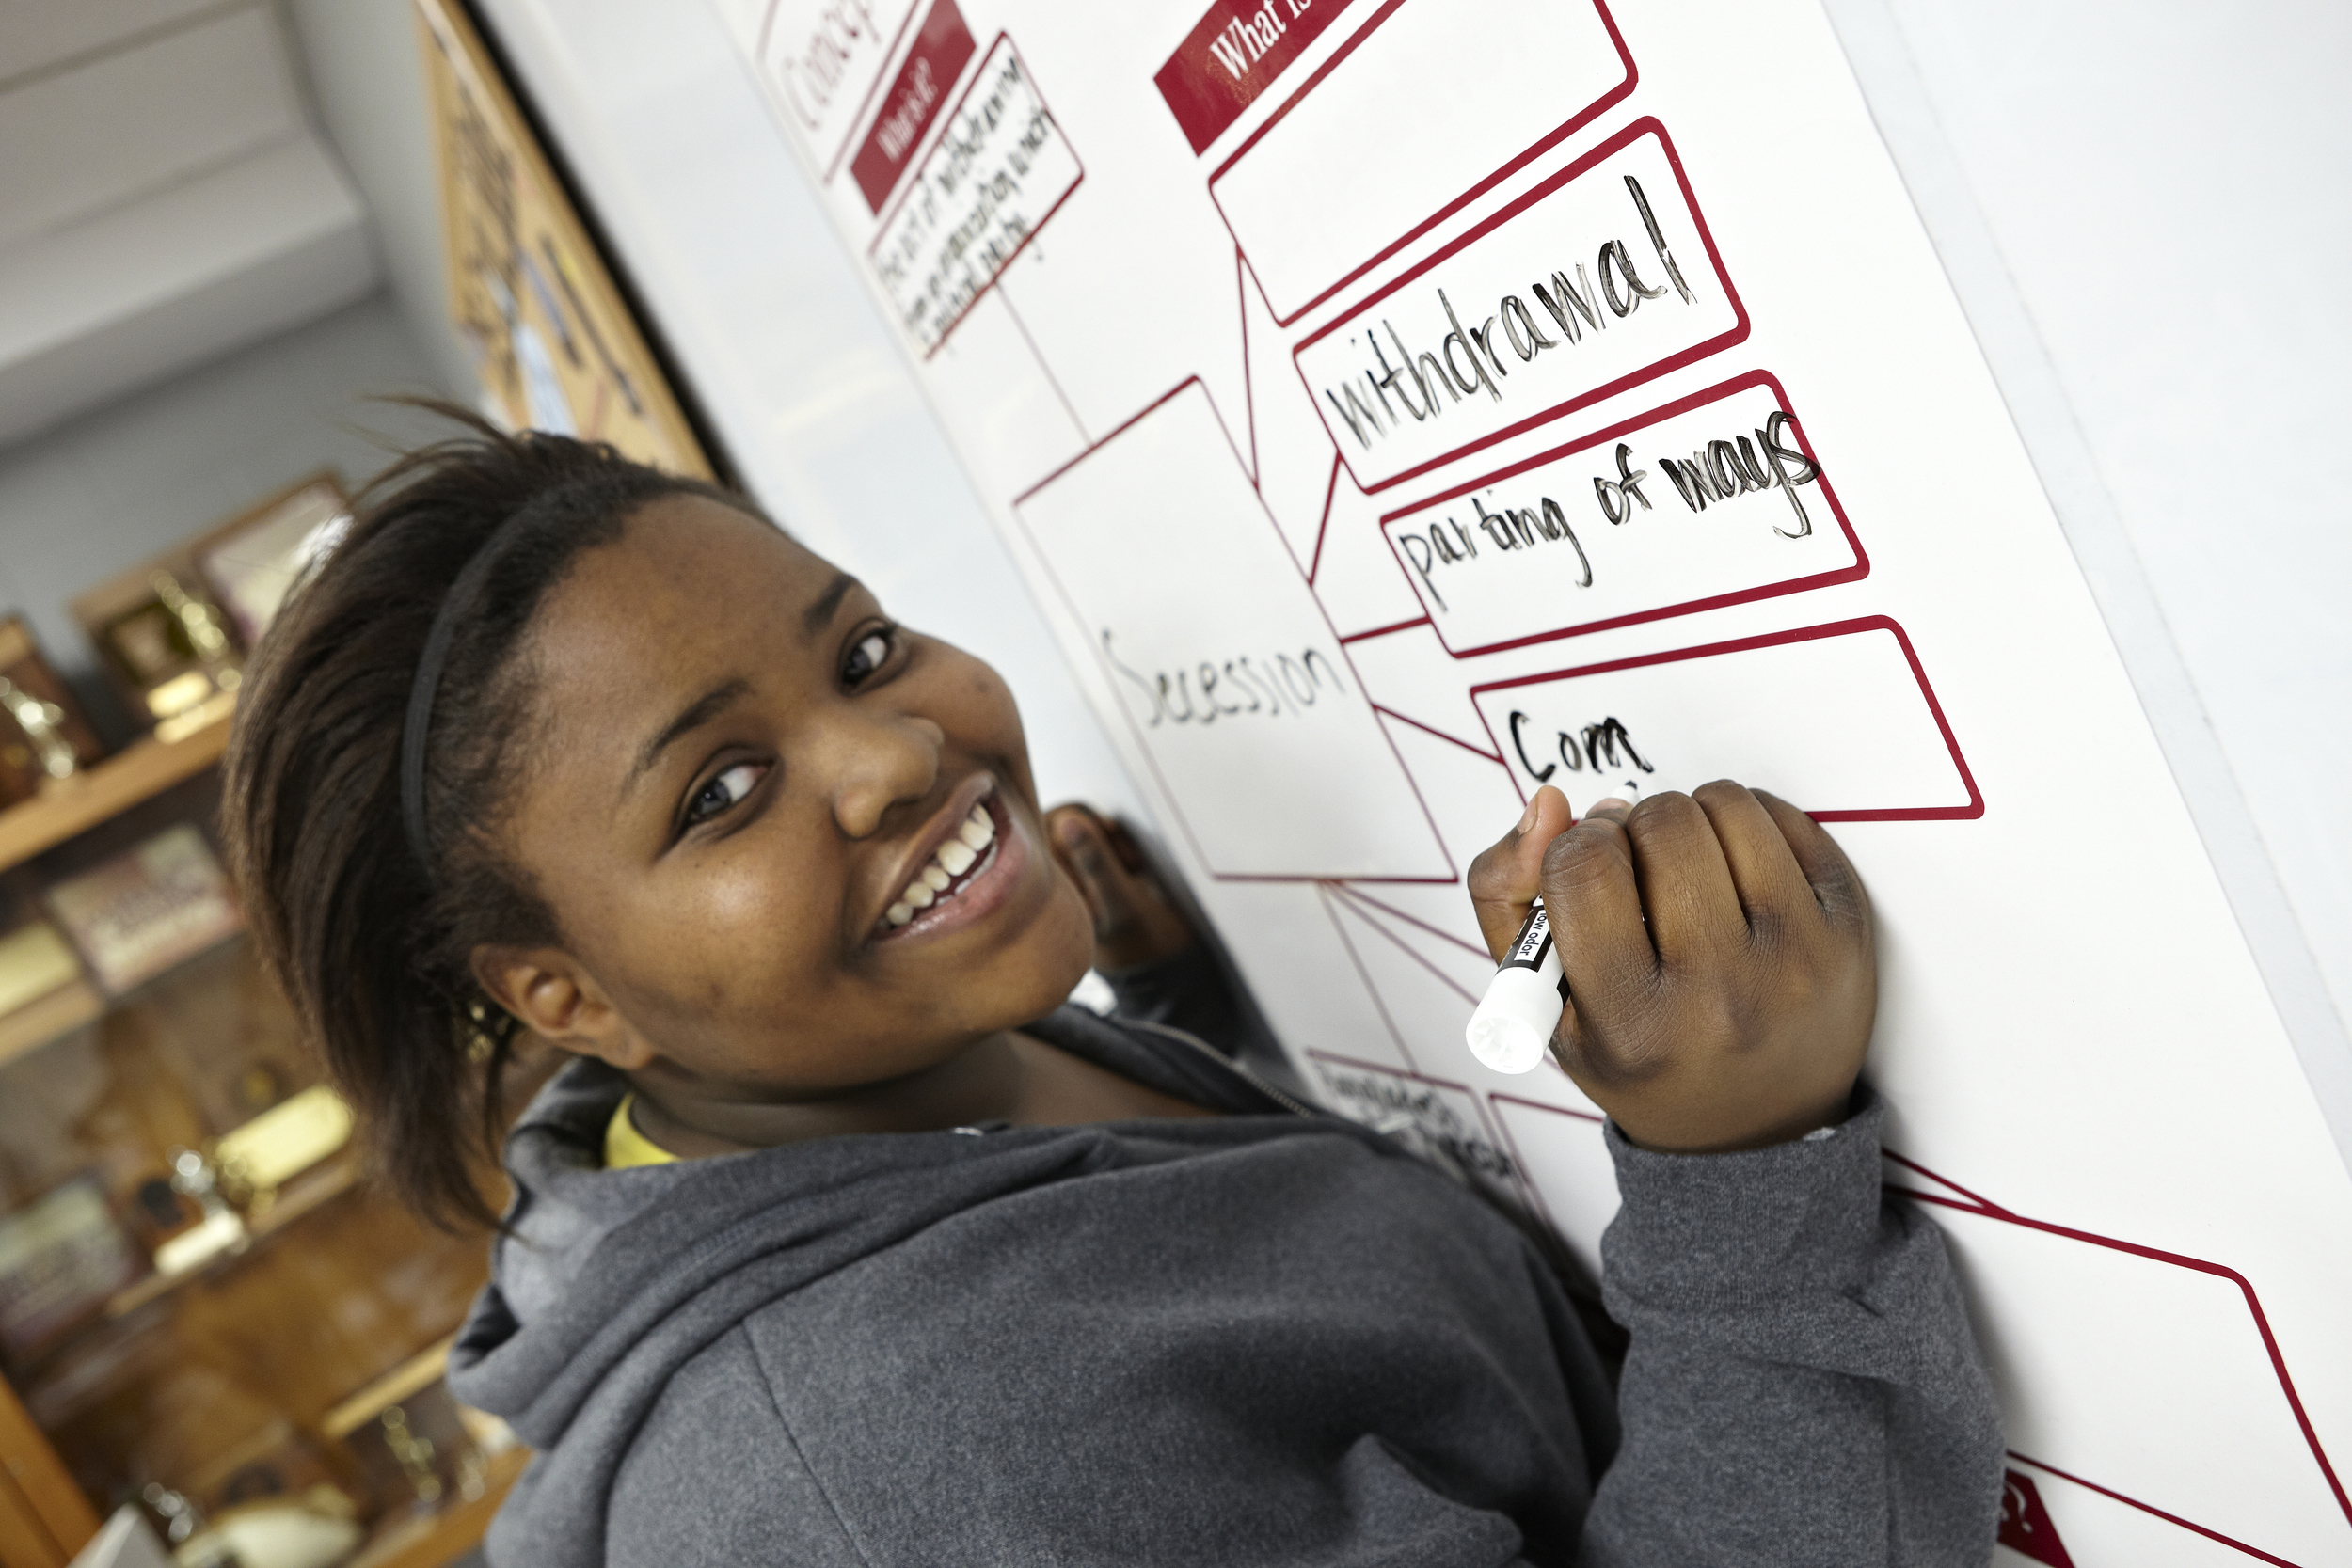 Laminate posters for reuse with dry-erase markers